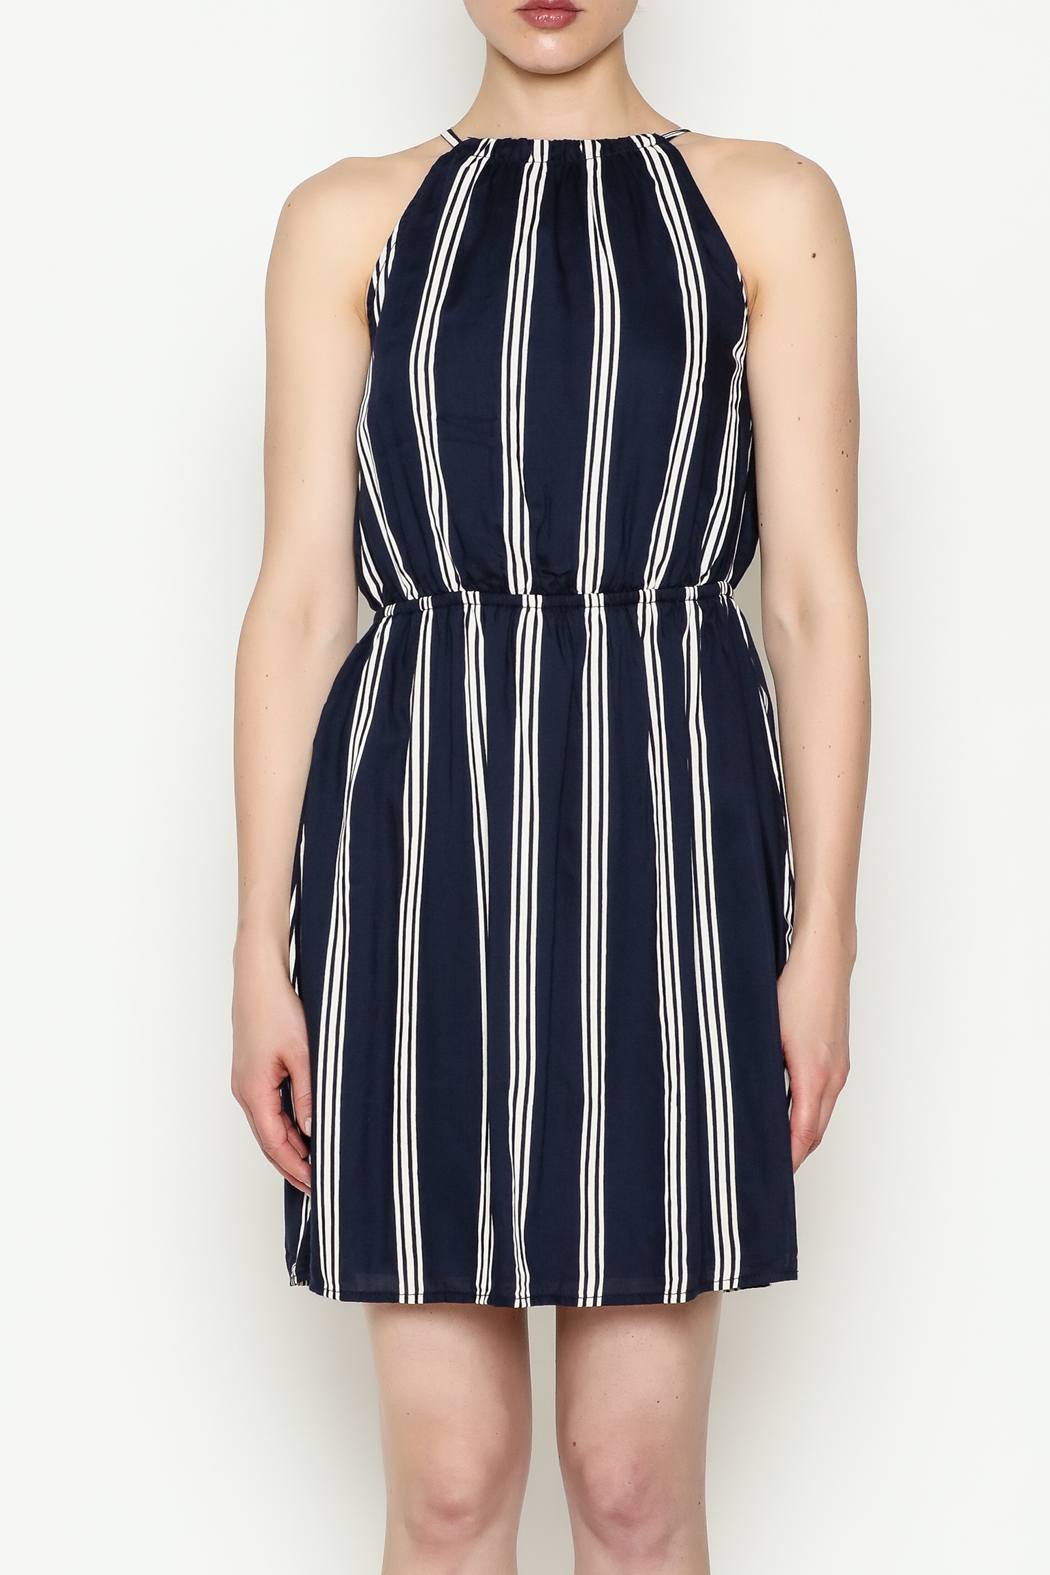 Olive & Oak Navy Stripe Dress - Front Full Image